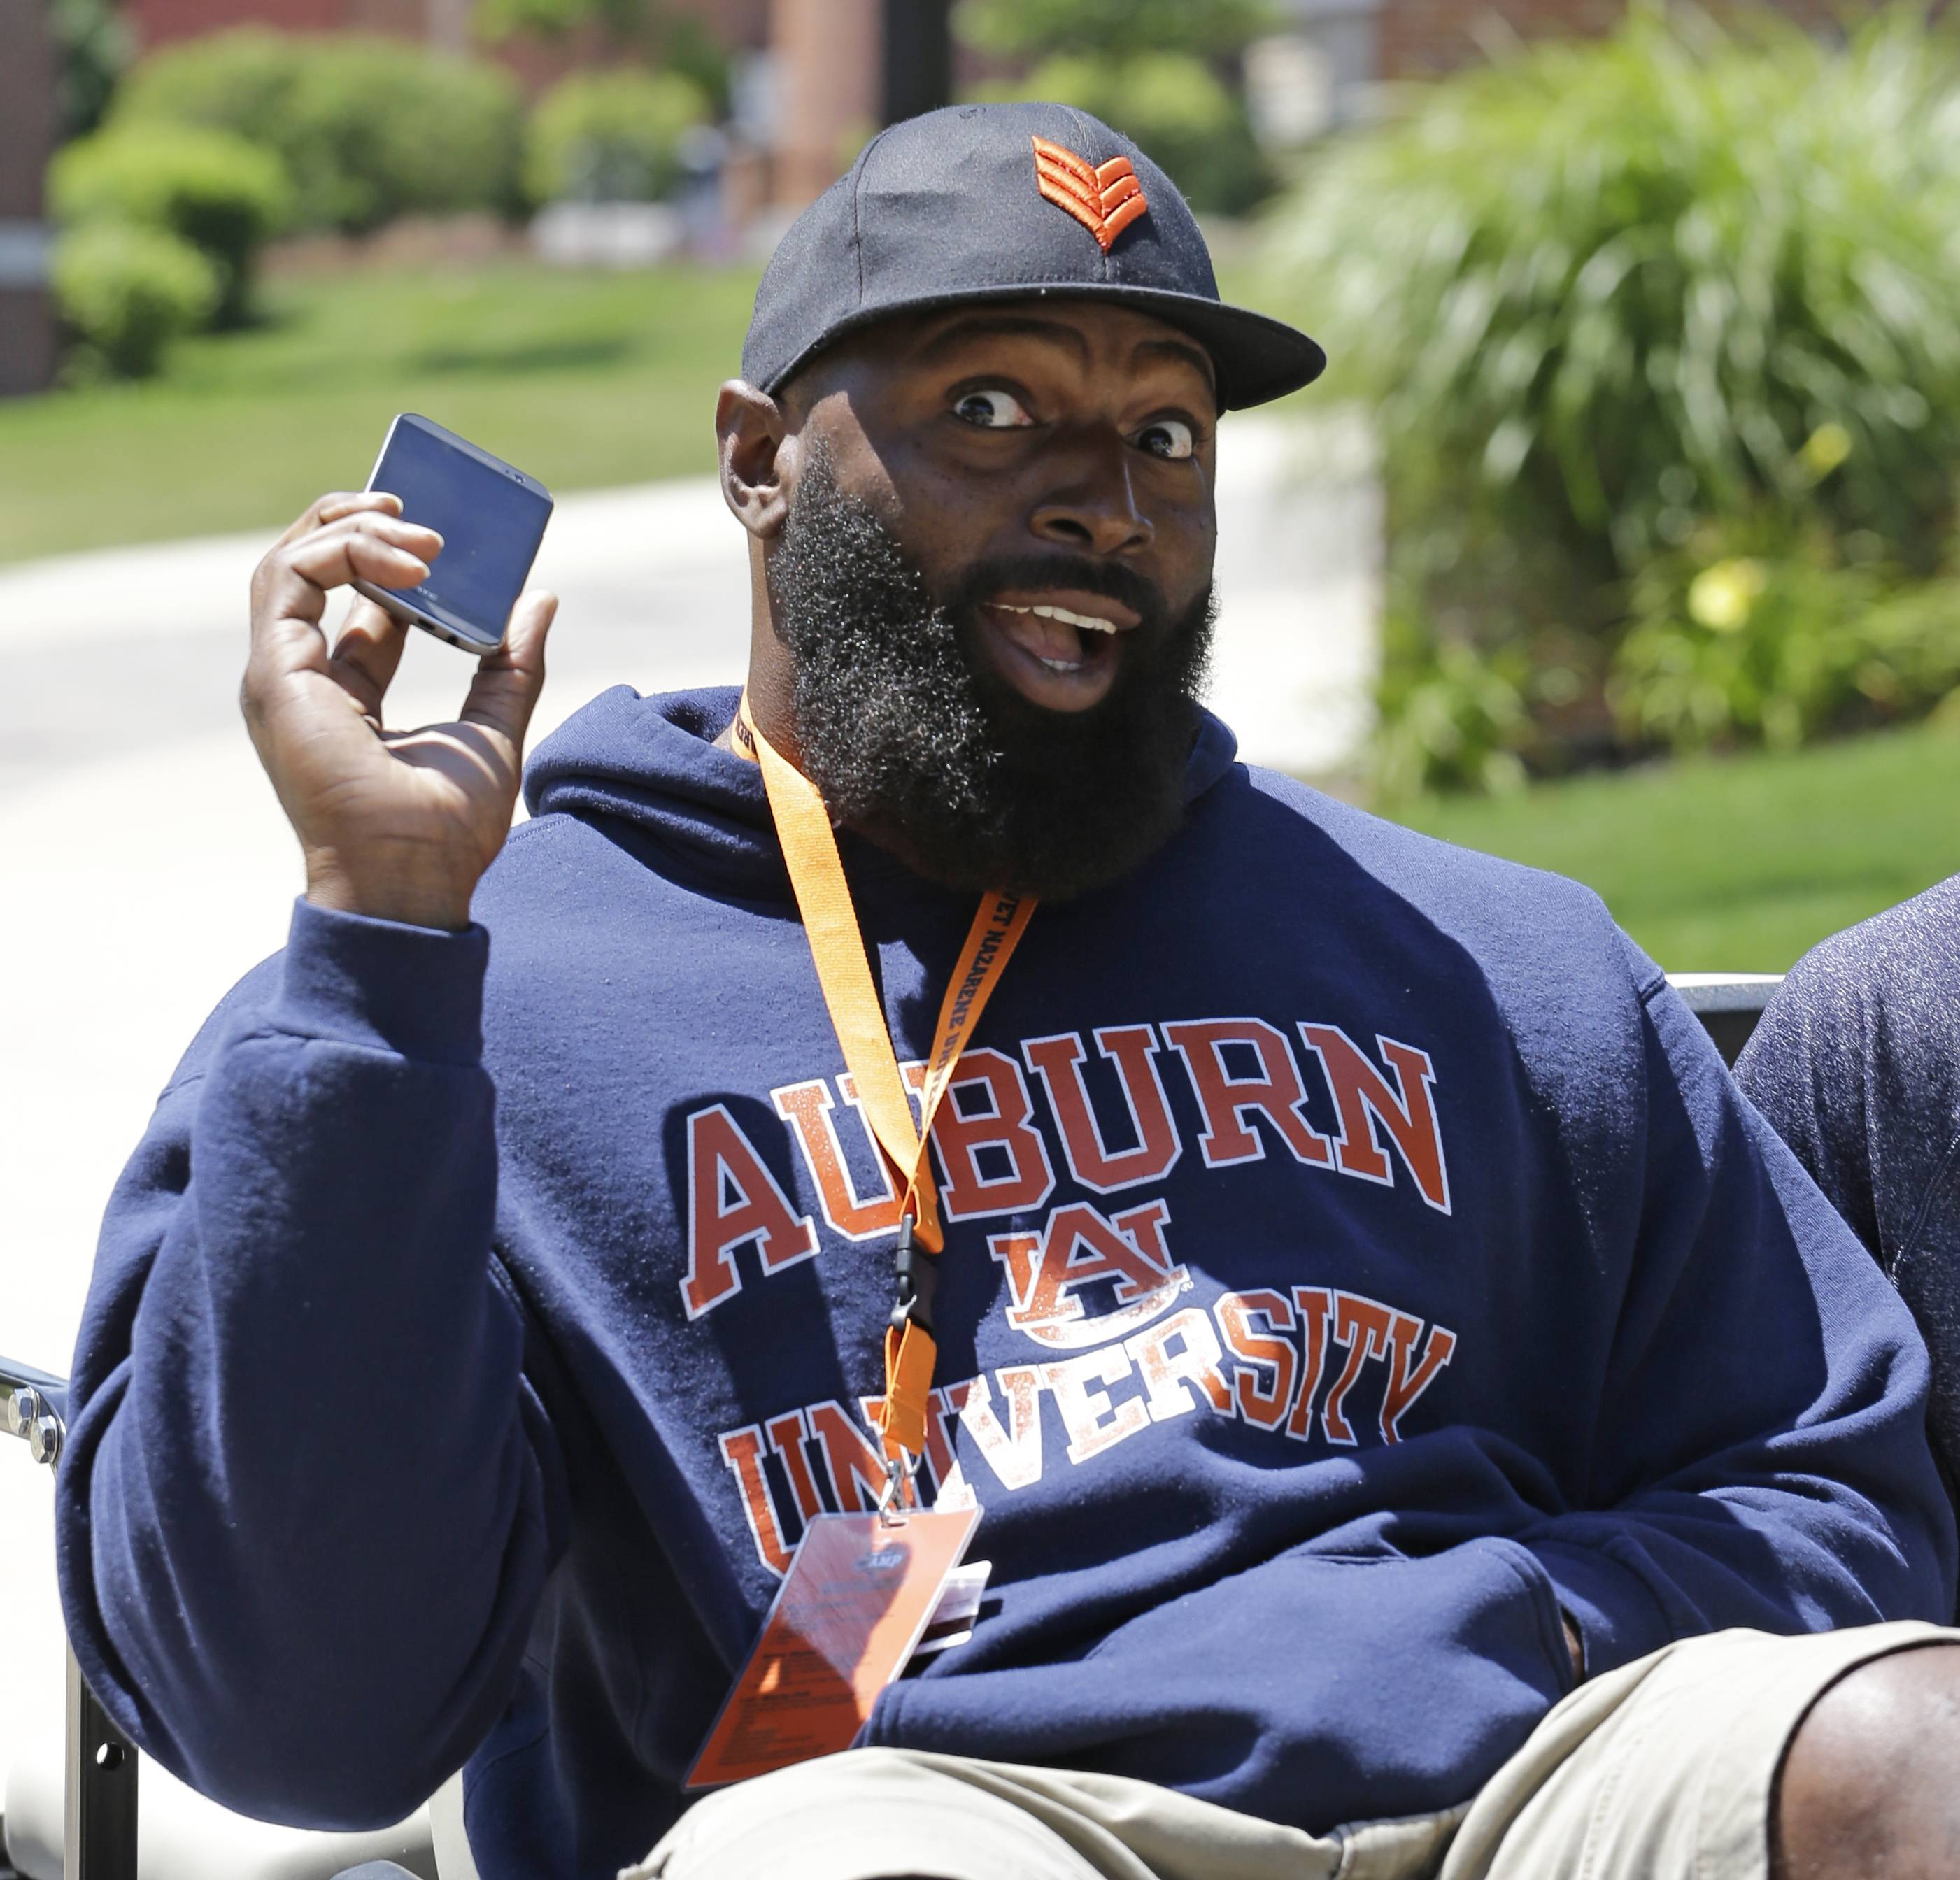 Bears defensive tackle Jeremiah Ratliff (90) poses for the media during the team's NFL football training camp at Olivet Nazarene University on Wednesday, July 23, 2014., in Bourbonnais, Ill.